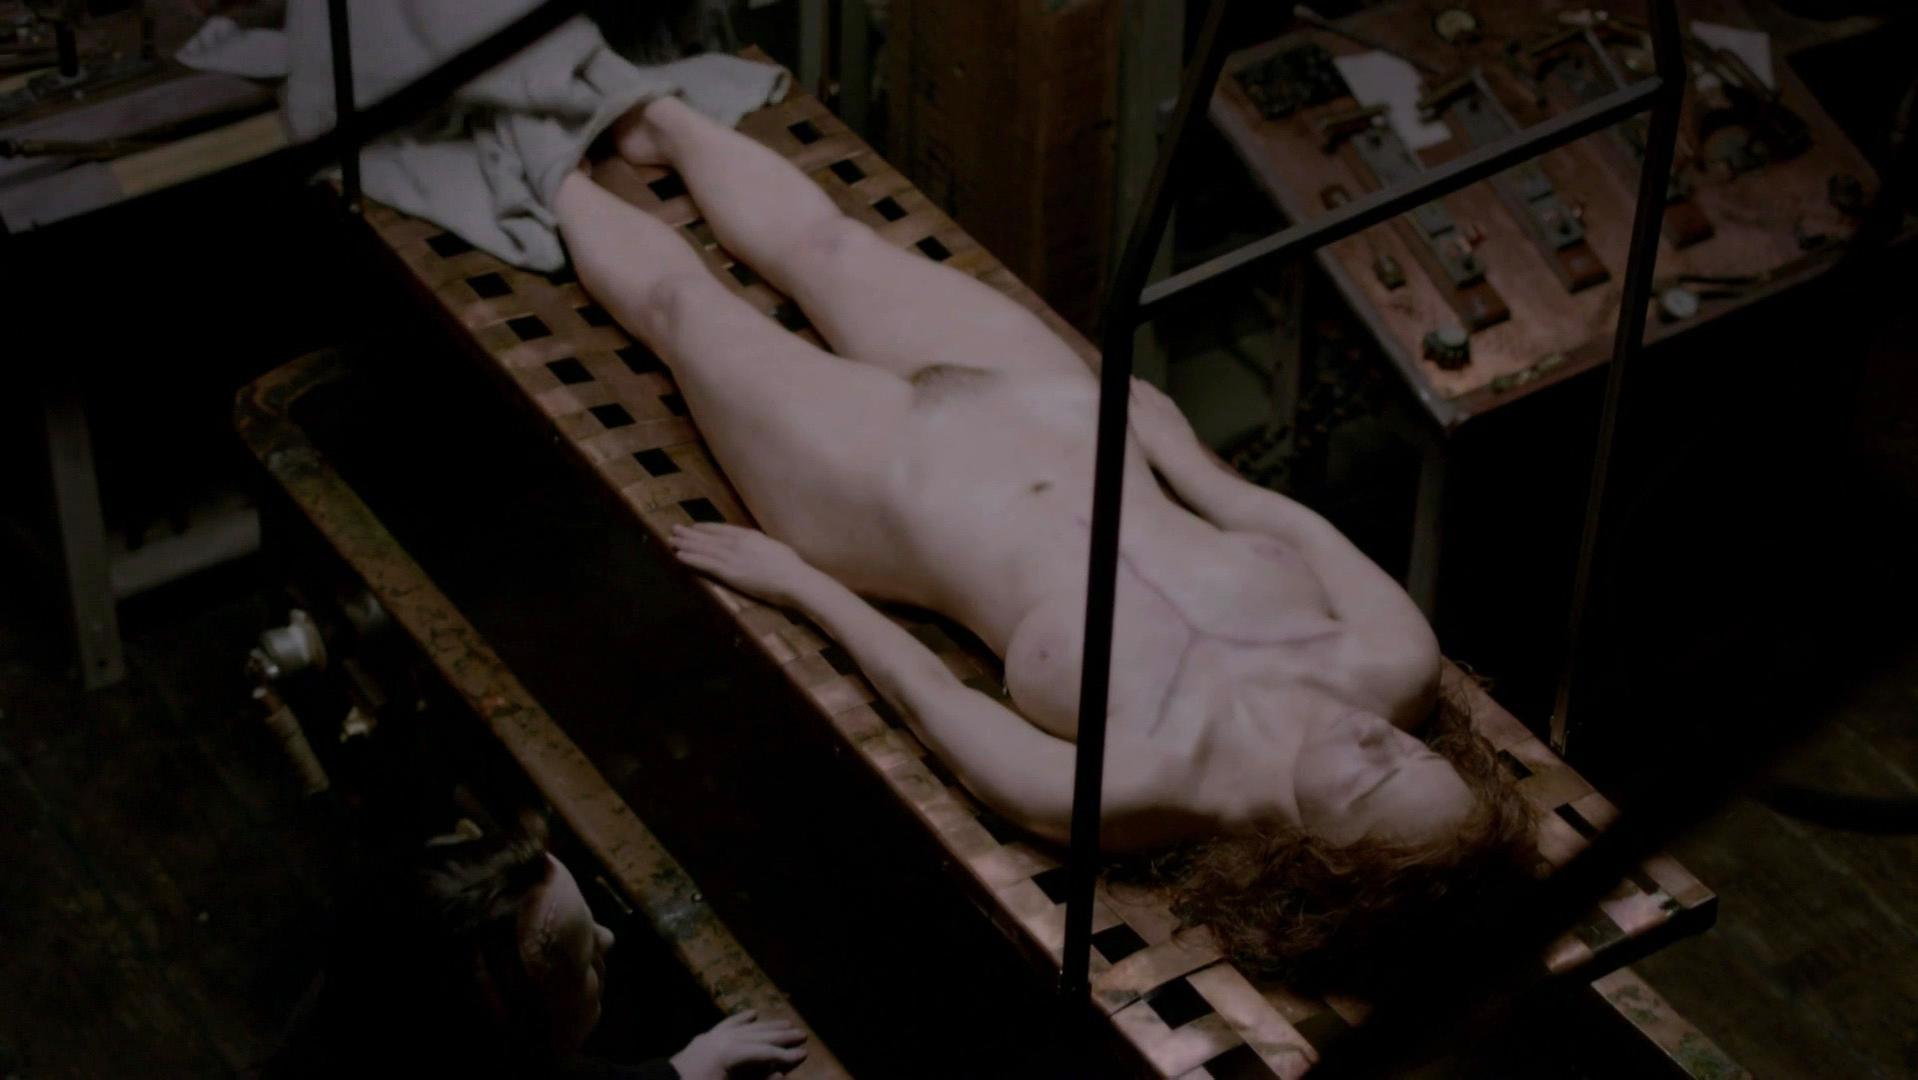 Billie Piper nude - Penny Dreadful s02e01 (2015)